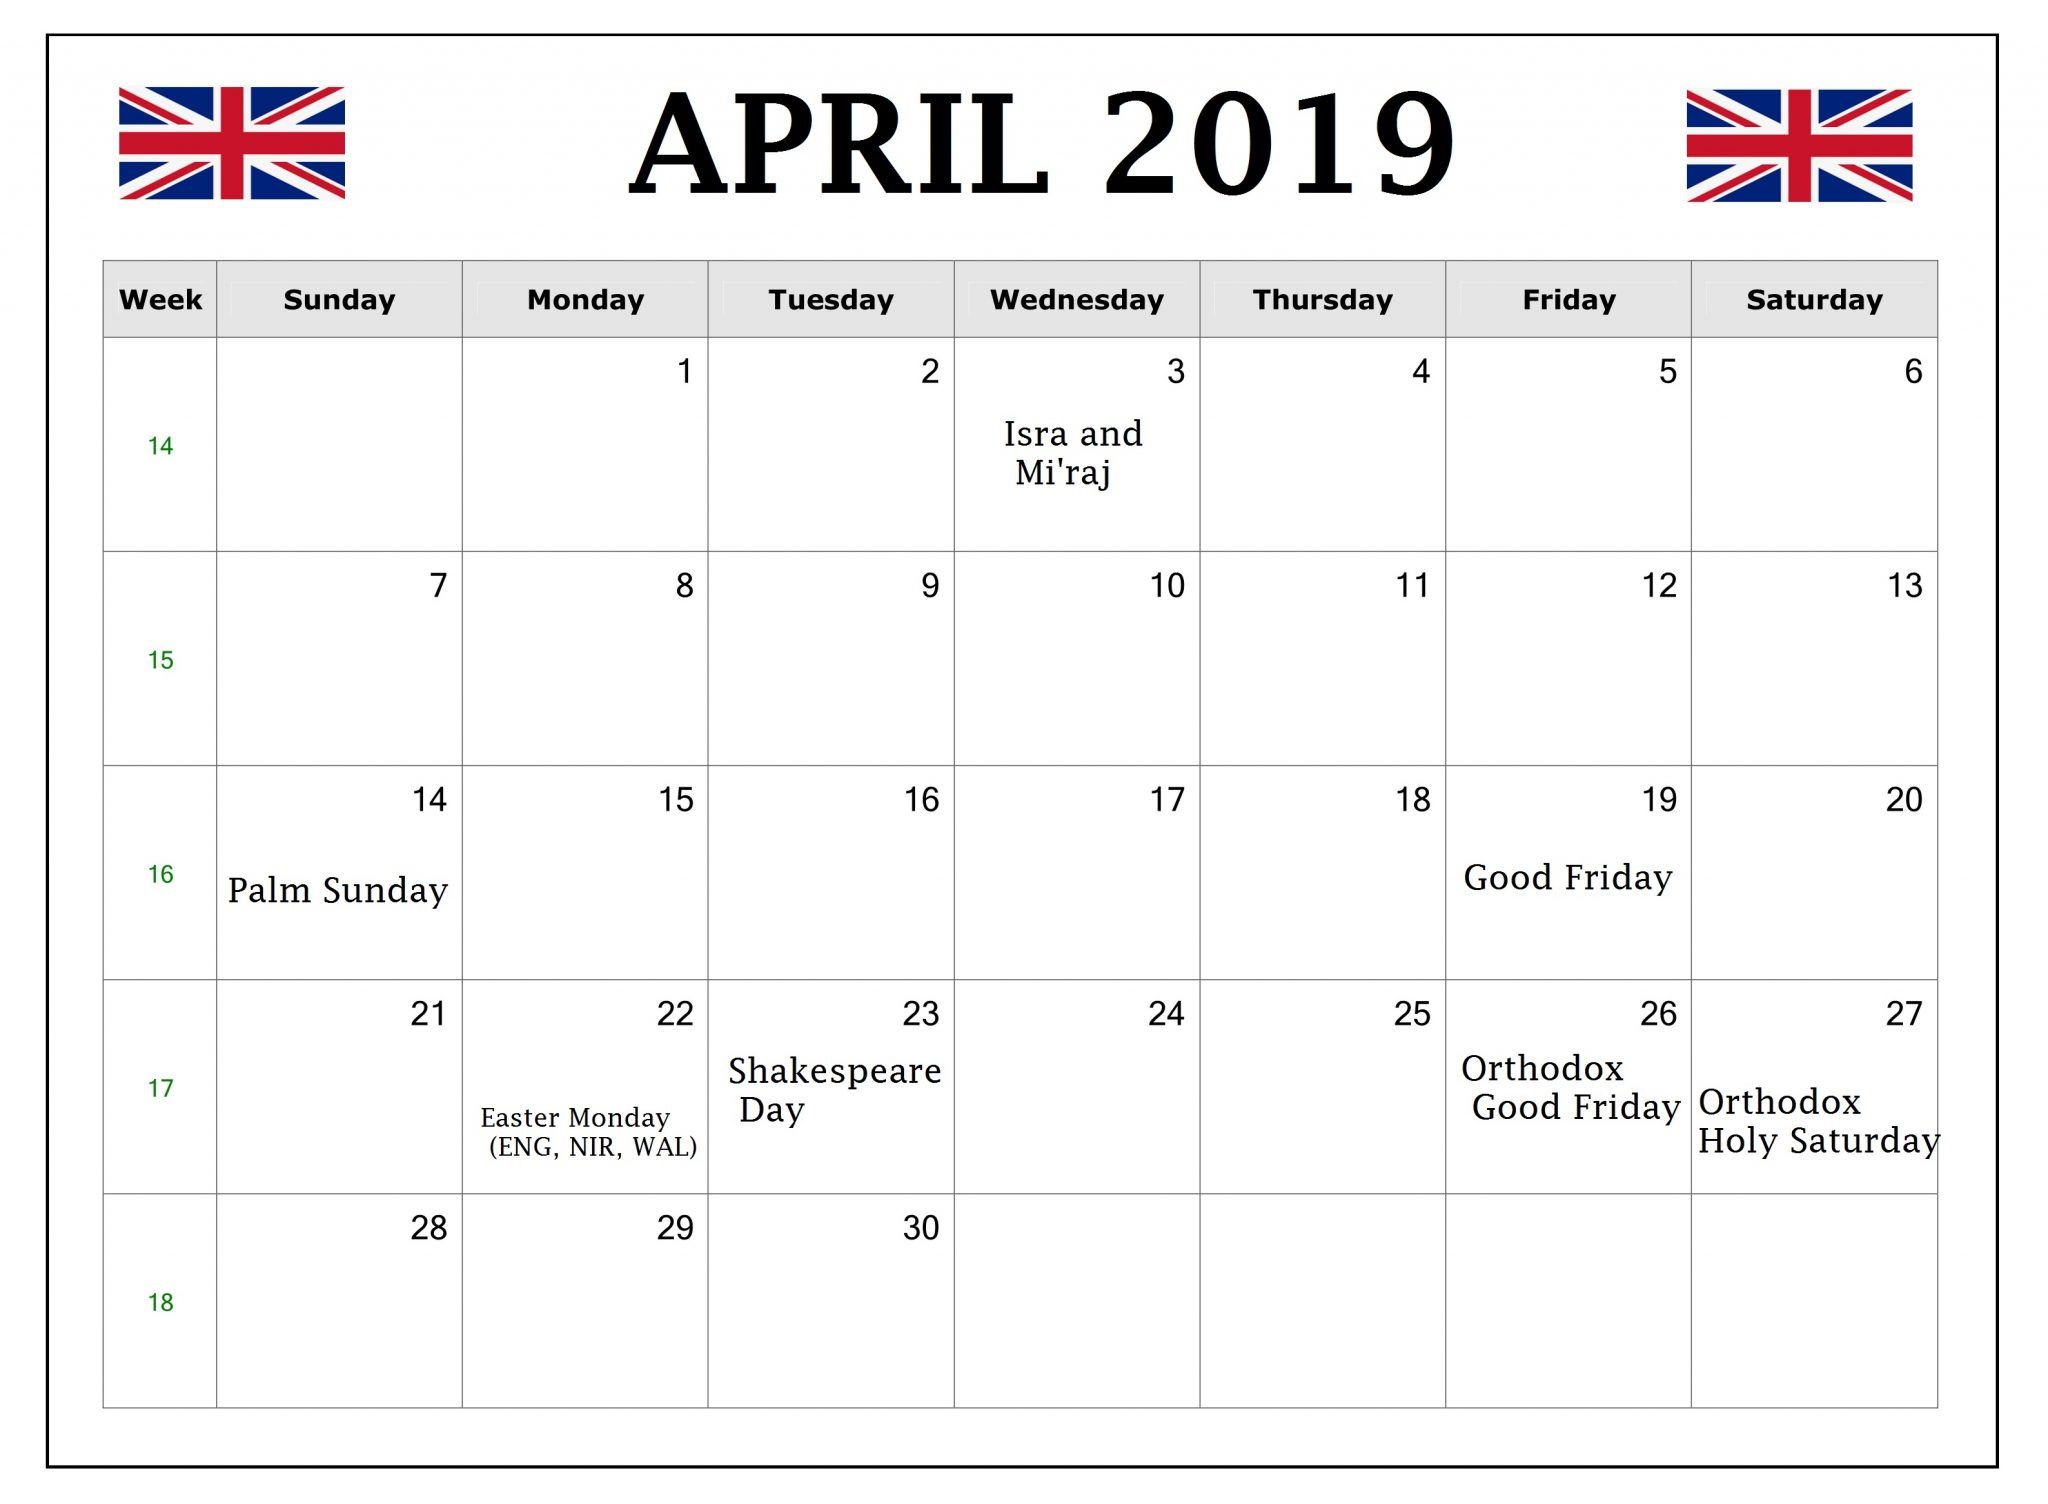 April 2019 United Kingdom Holidays Calendar (UK)